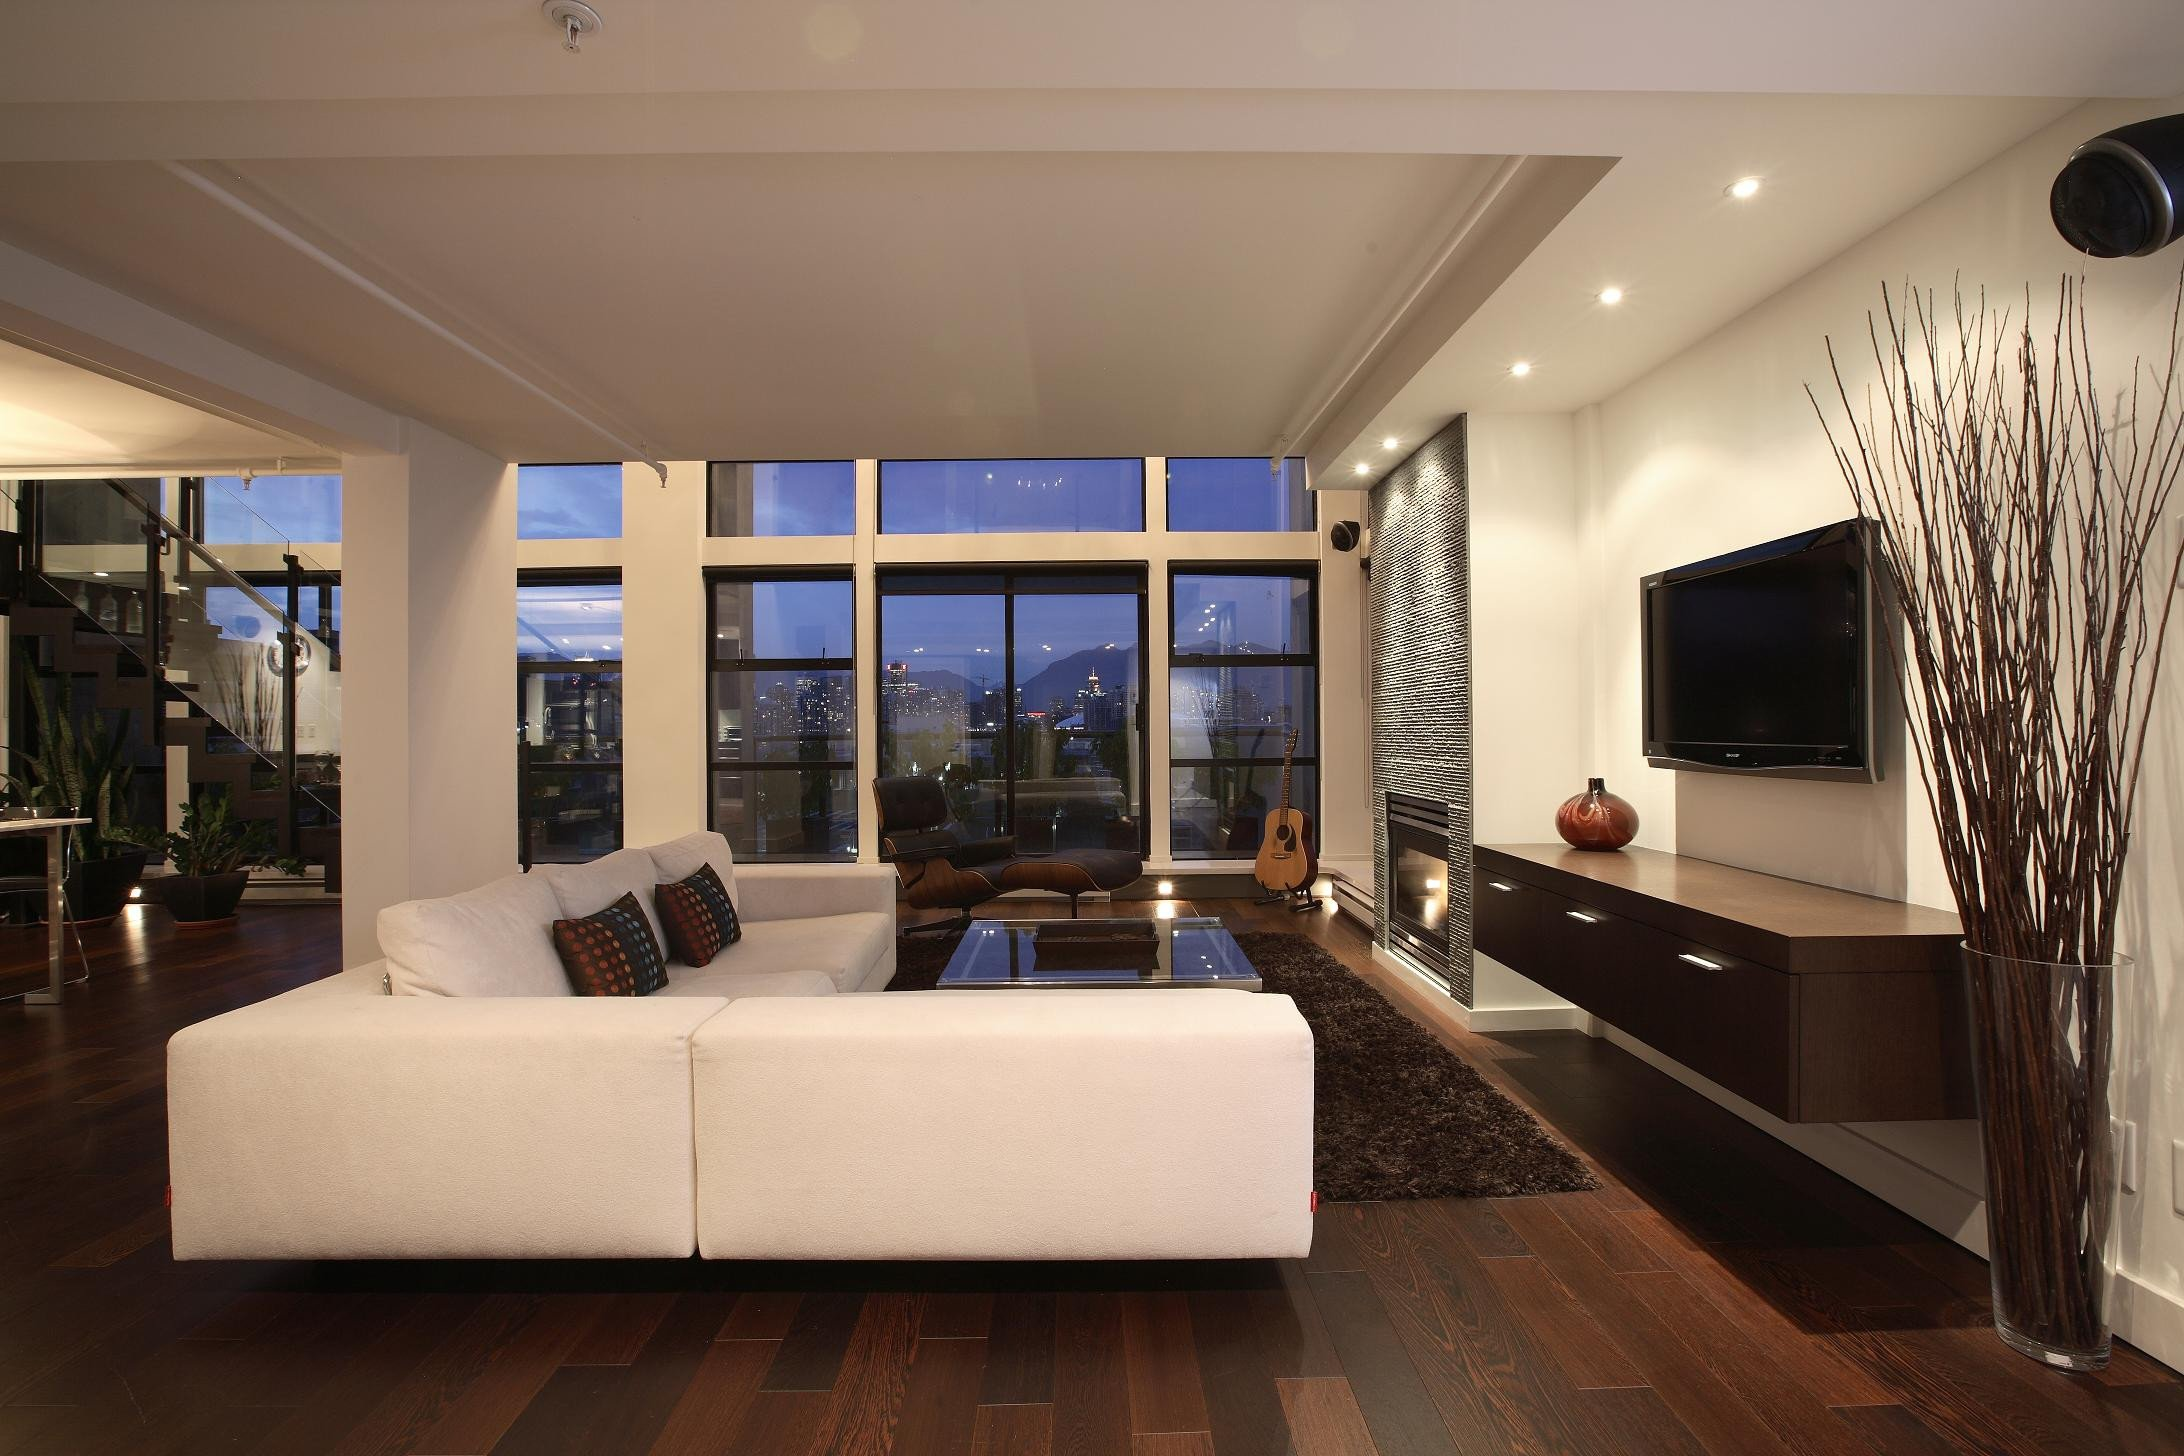 Modern Chair Living Room Decorating Ideas How to Arrange Your Living Room Furniture